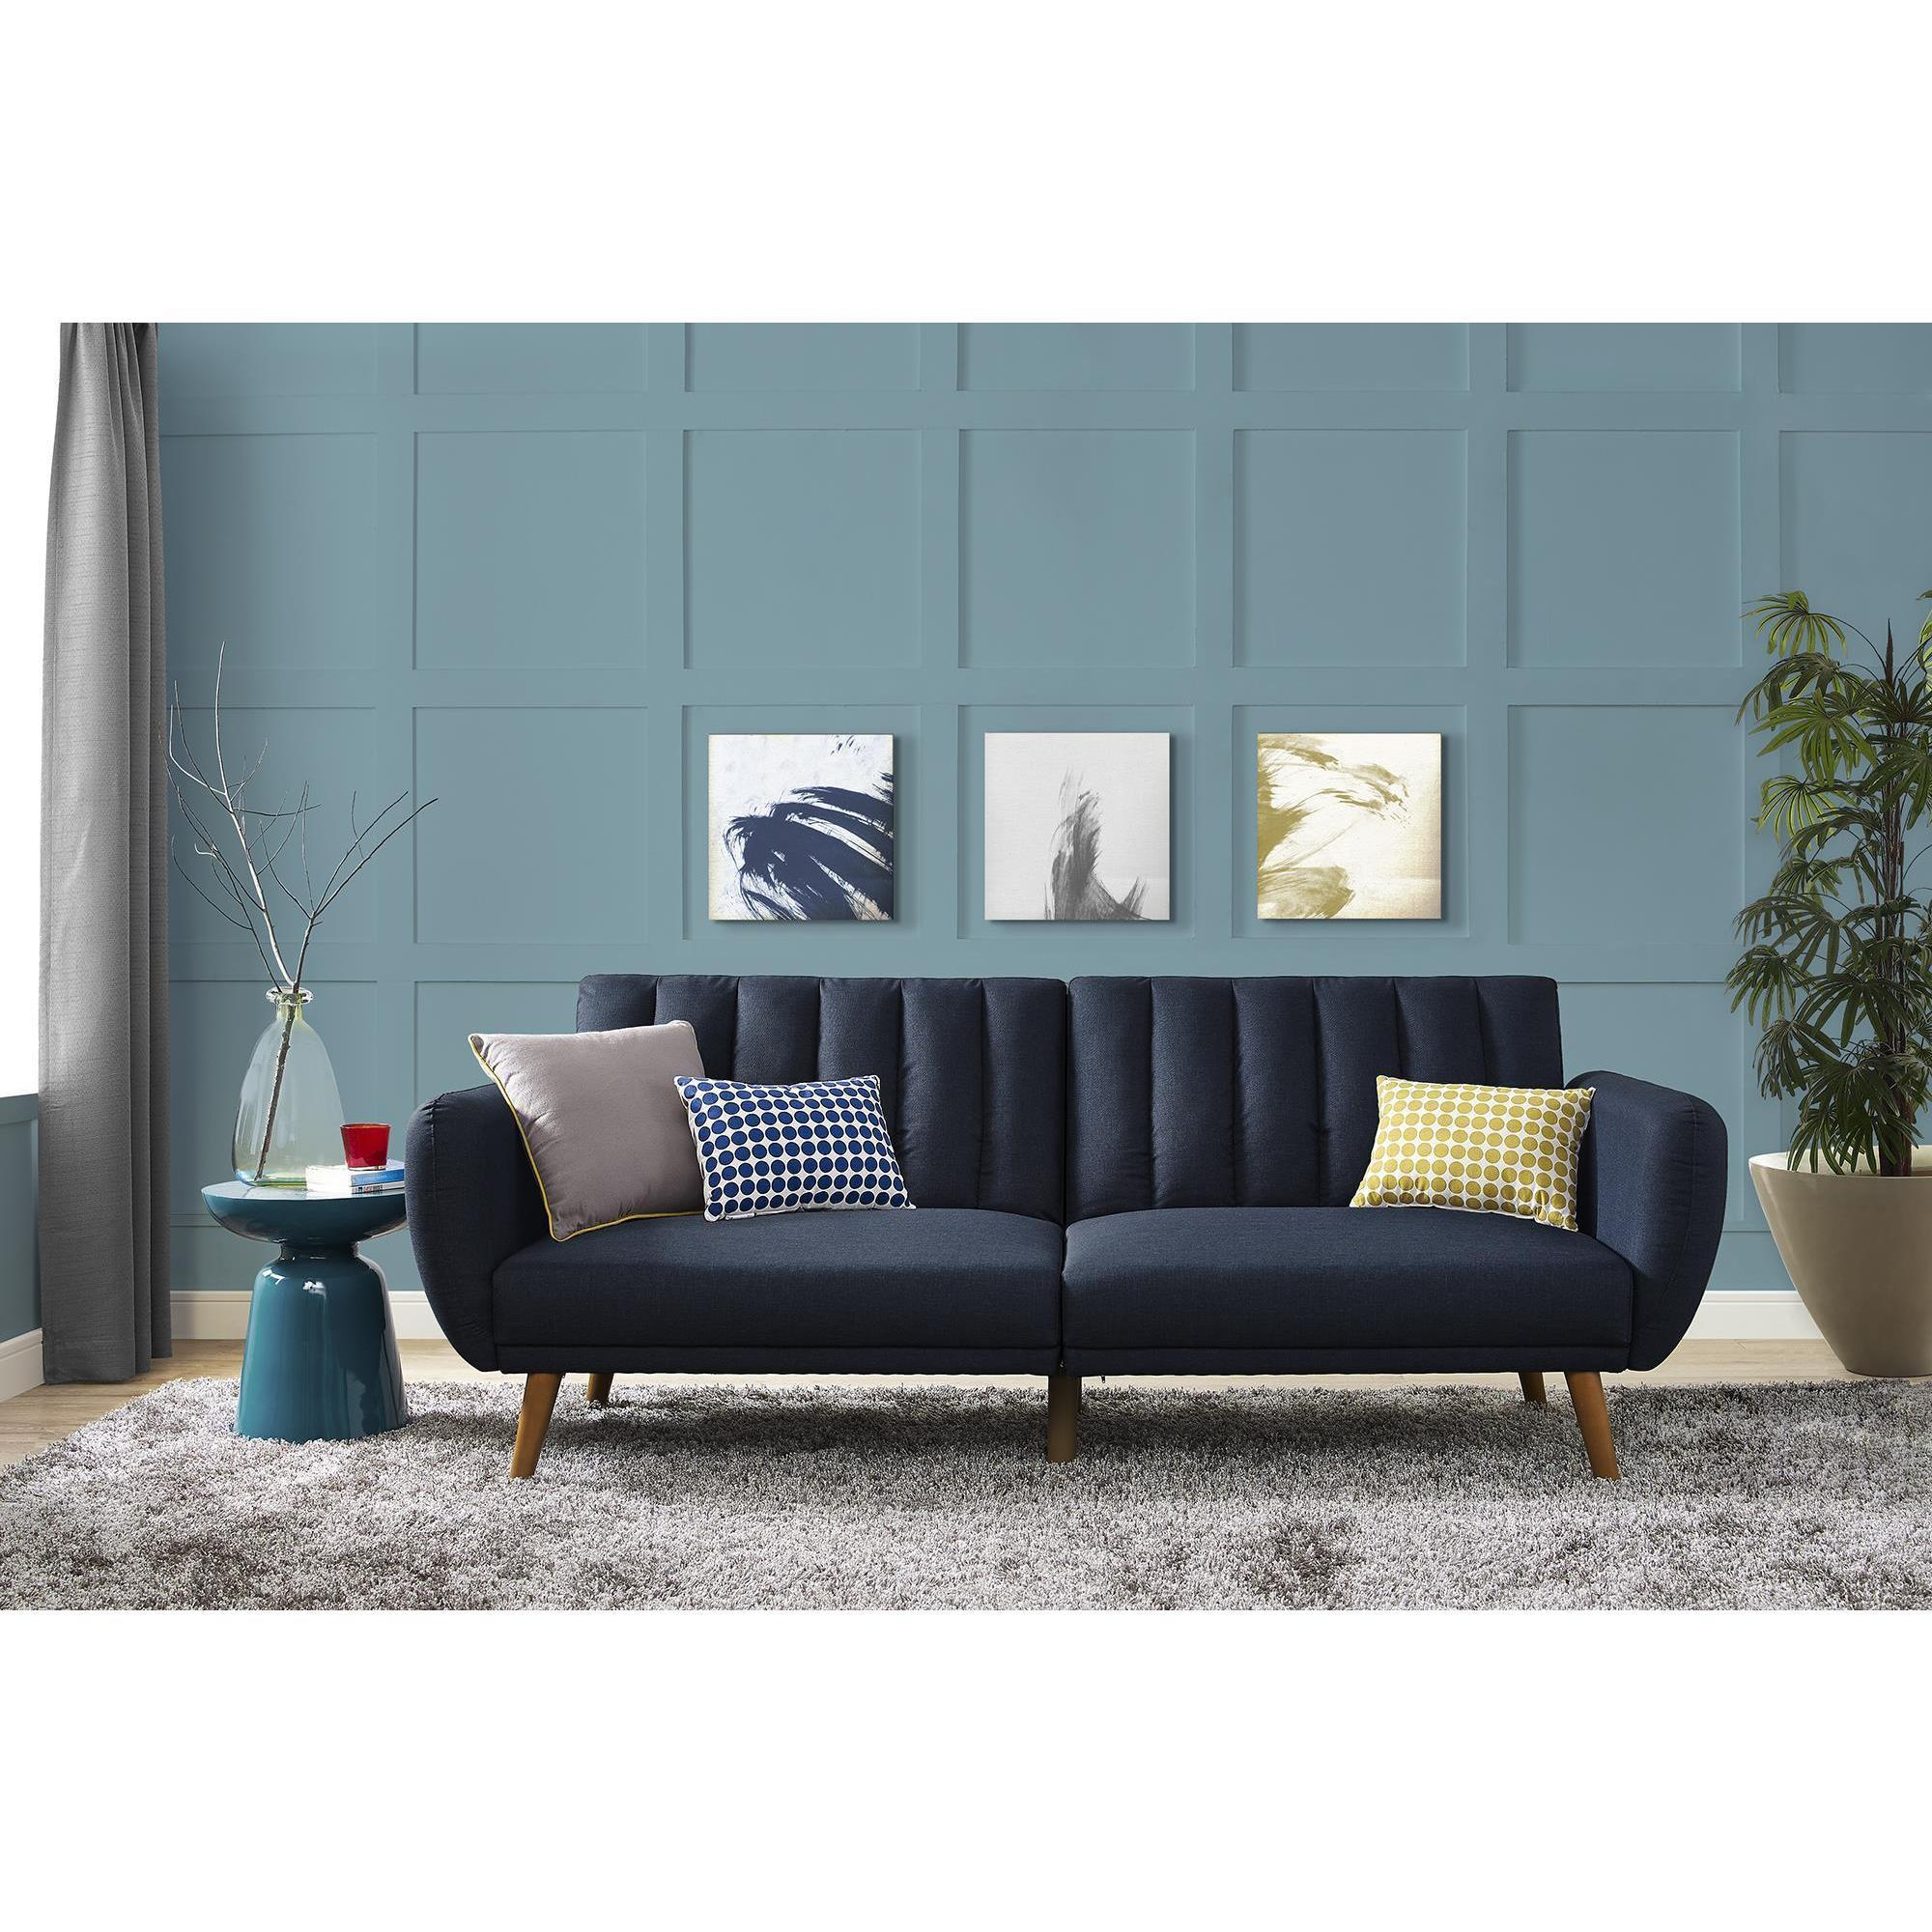 Beau Top Rated · Type: Sofa · Clear All · Carson Carrington Brandbu Mid Century  Fold Down Futon